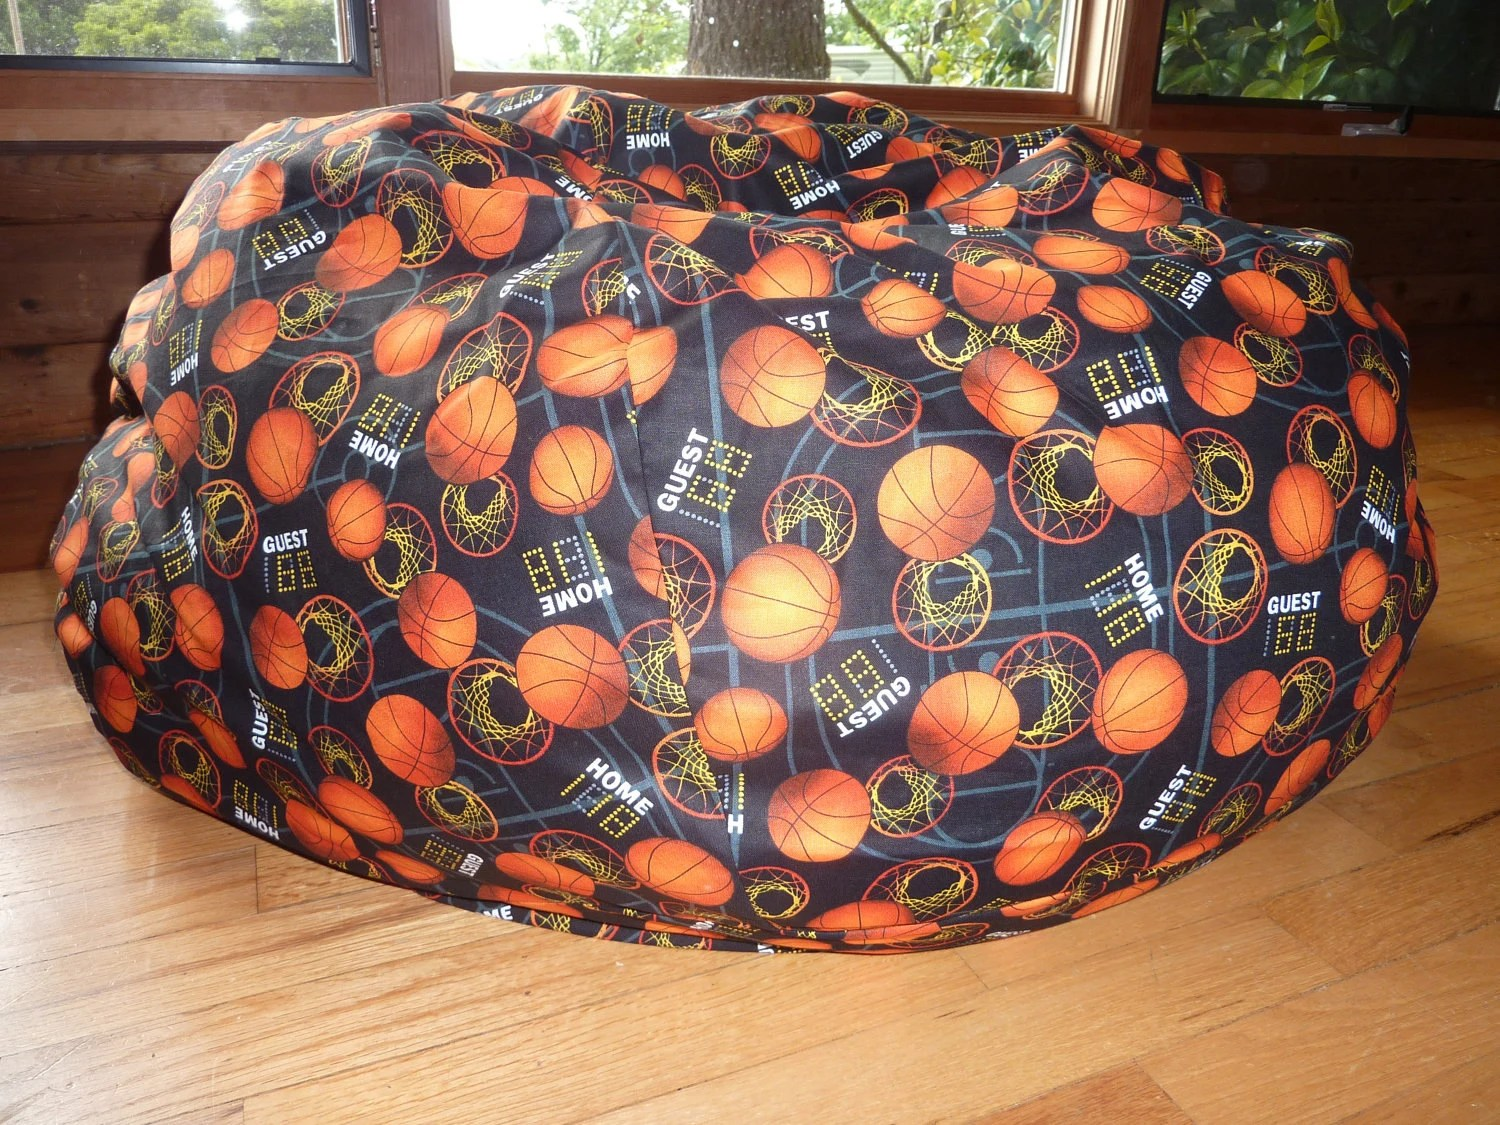 Bean Bag Chair Cover Basketball Bean Bag Chair Cover Basketball Hoops Orange